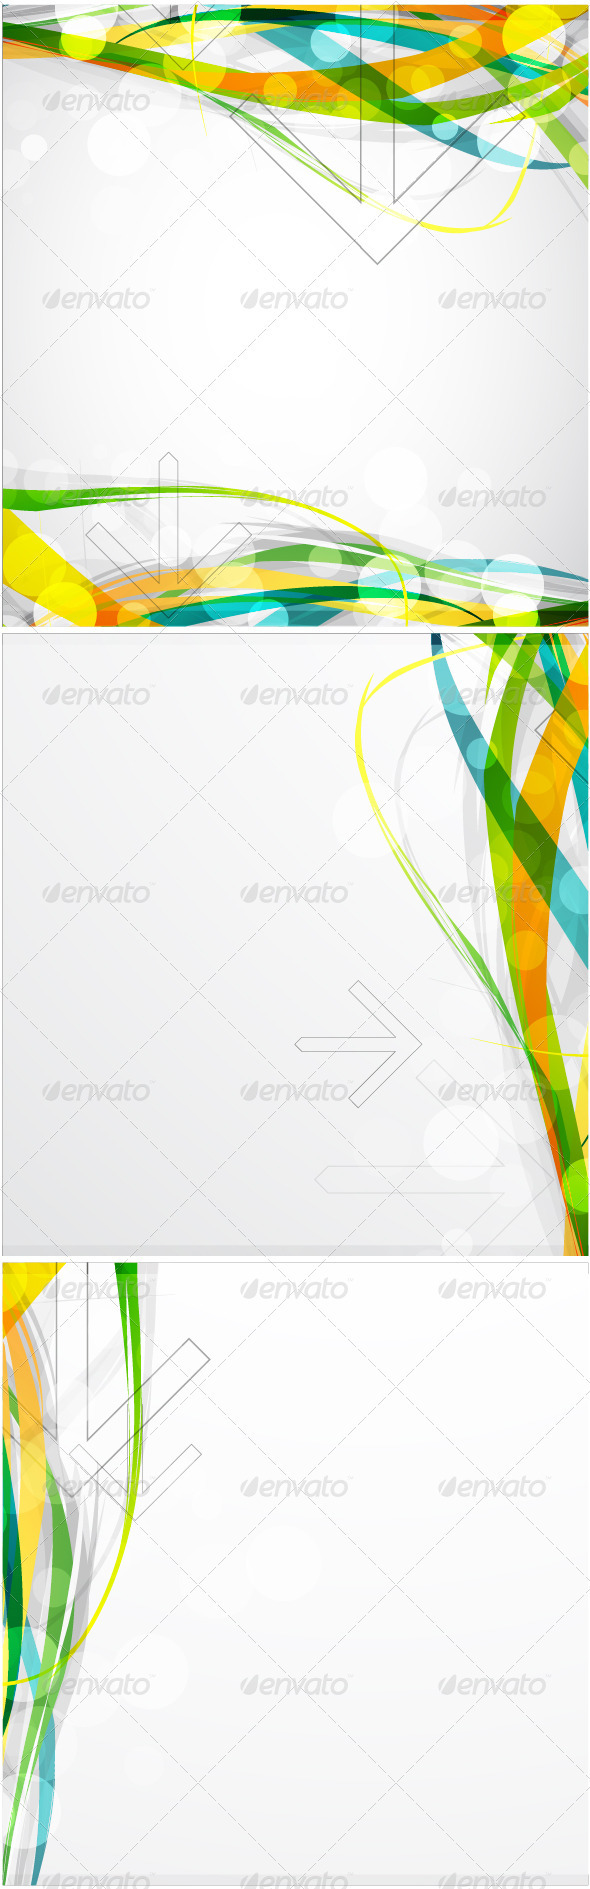 GraphicRiver Colorful waves 459913